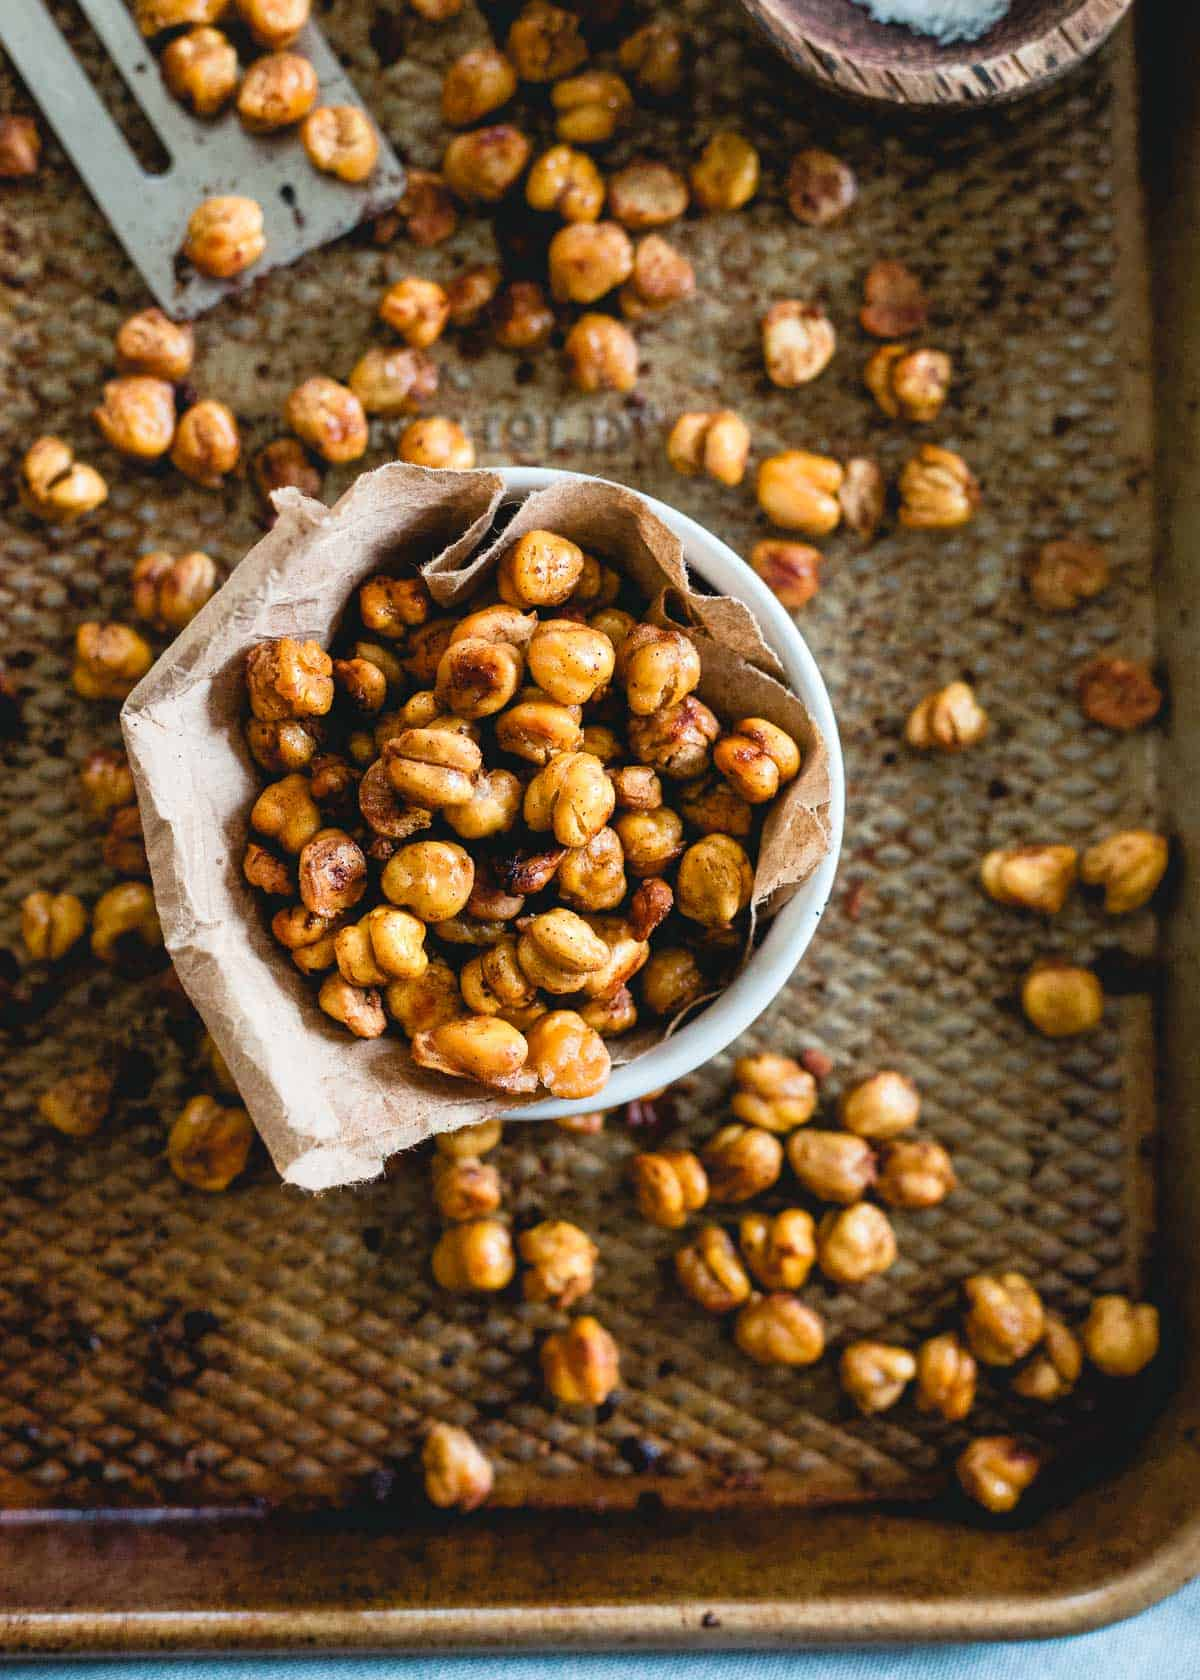 These cinnamon toast crunch roasted chickpeas taste just like the cereal. Made with maple syrup, coconut oil and cinnamon, they're a much healthier way to snack.